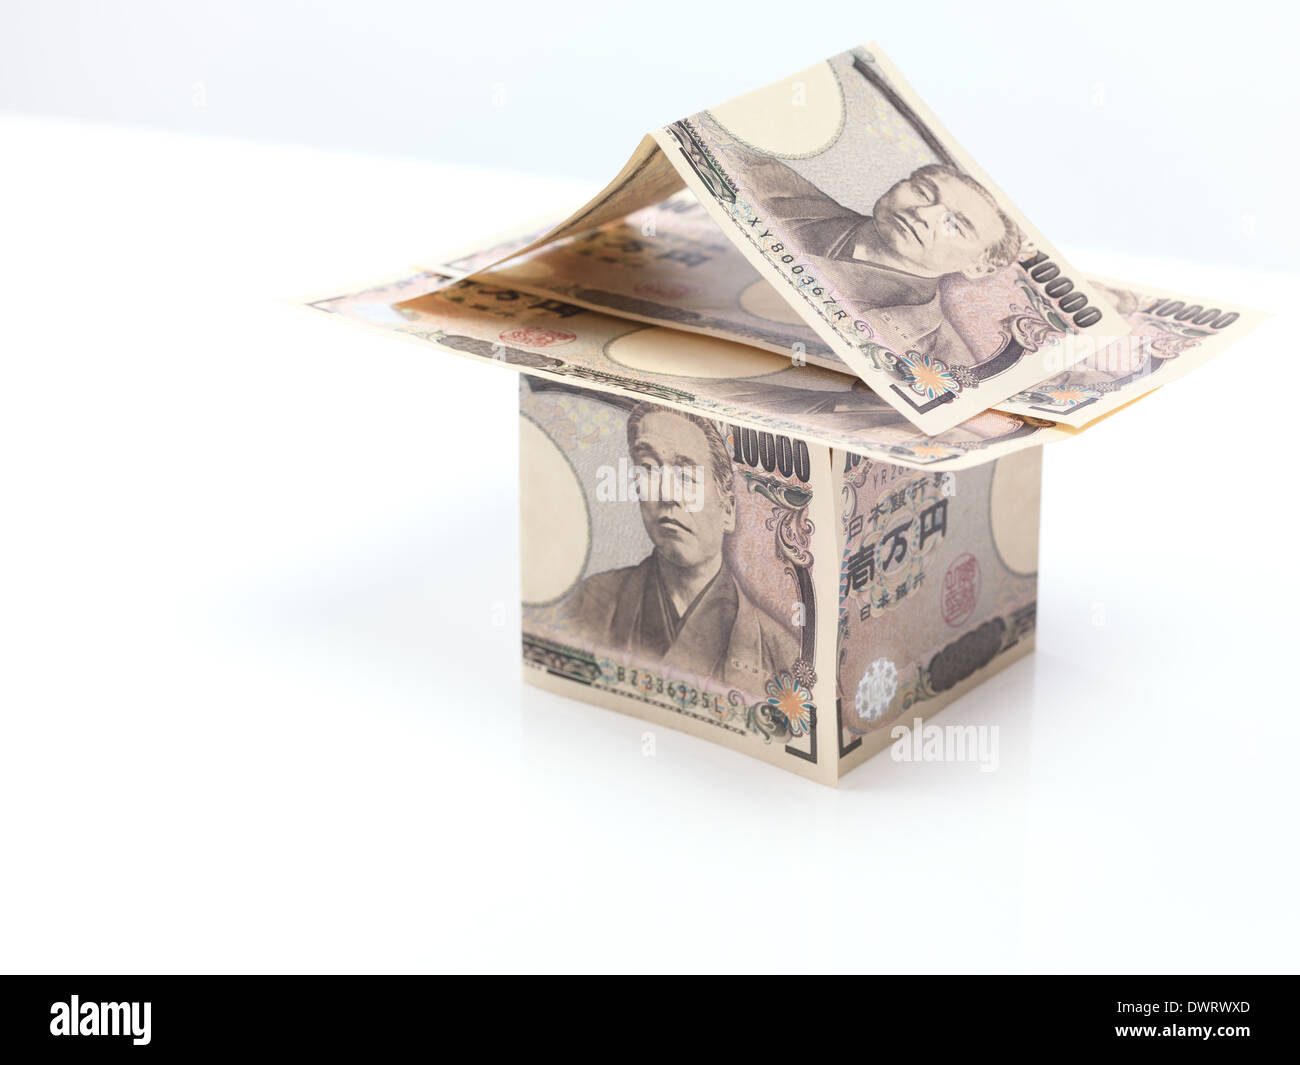 House made of Japanese Yen, money currency bills isolated on white background - Stock Image